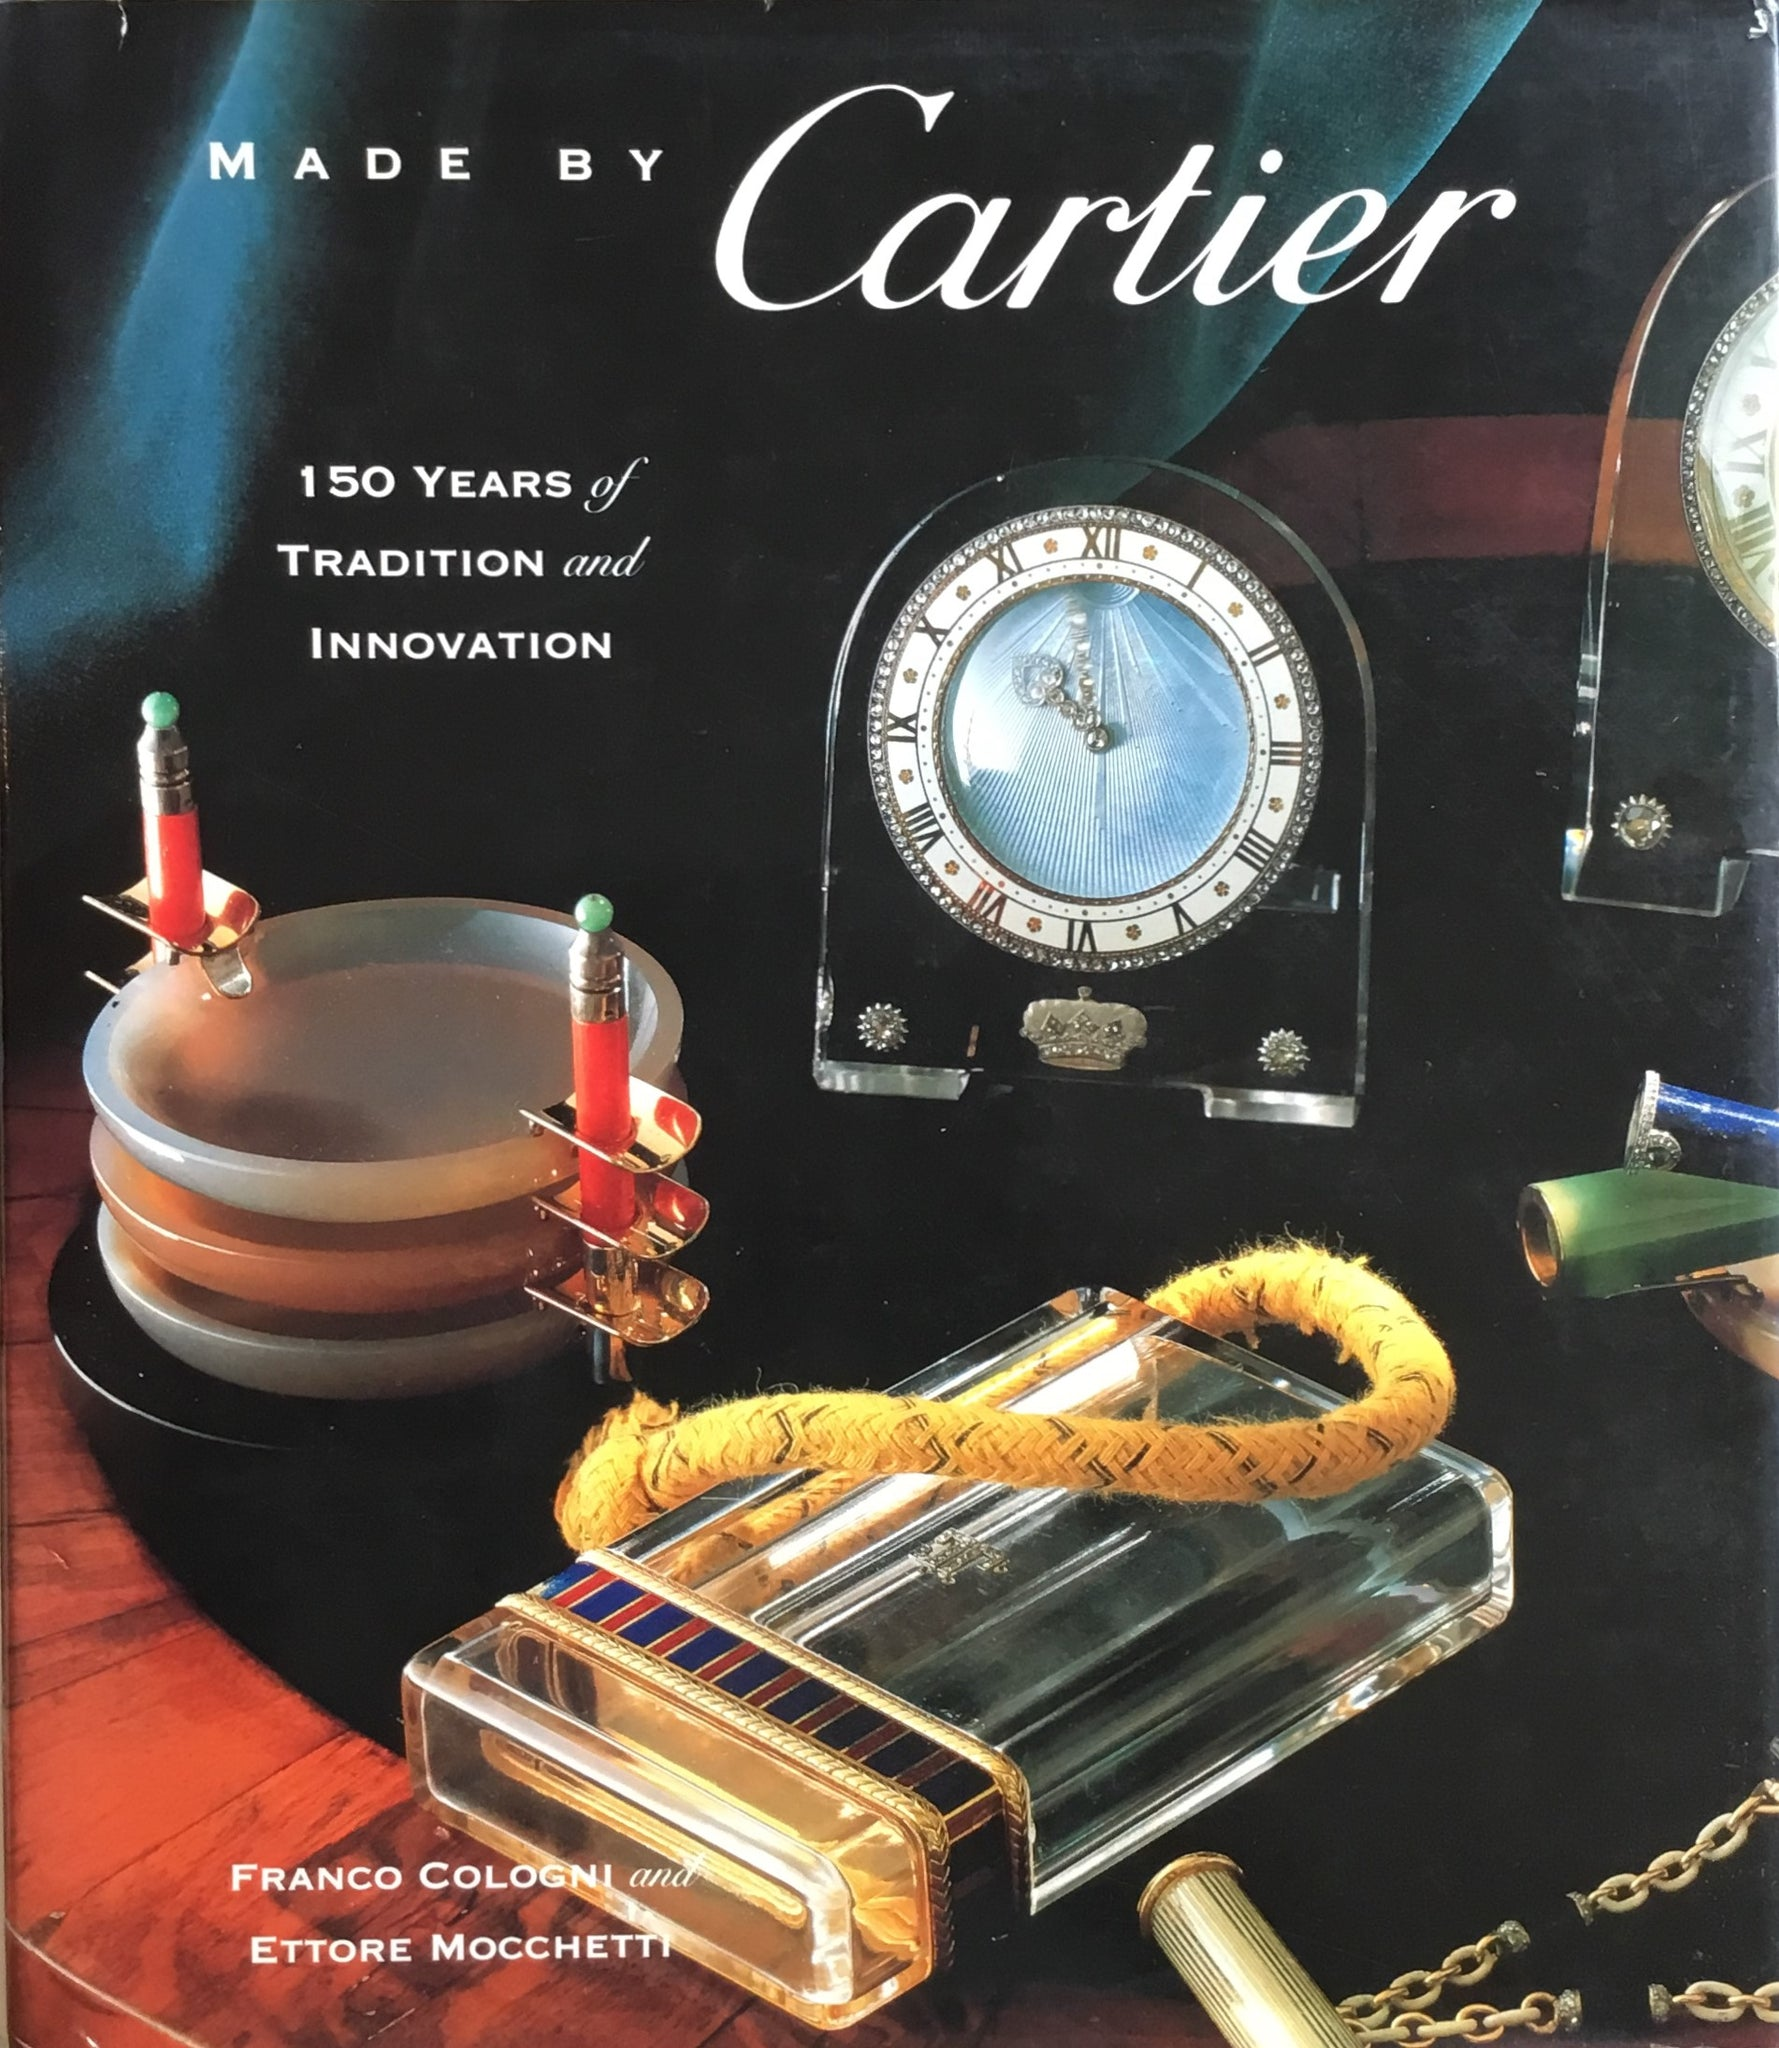 MADE BY Cartier 150 years of tradition and innovation